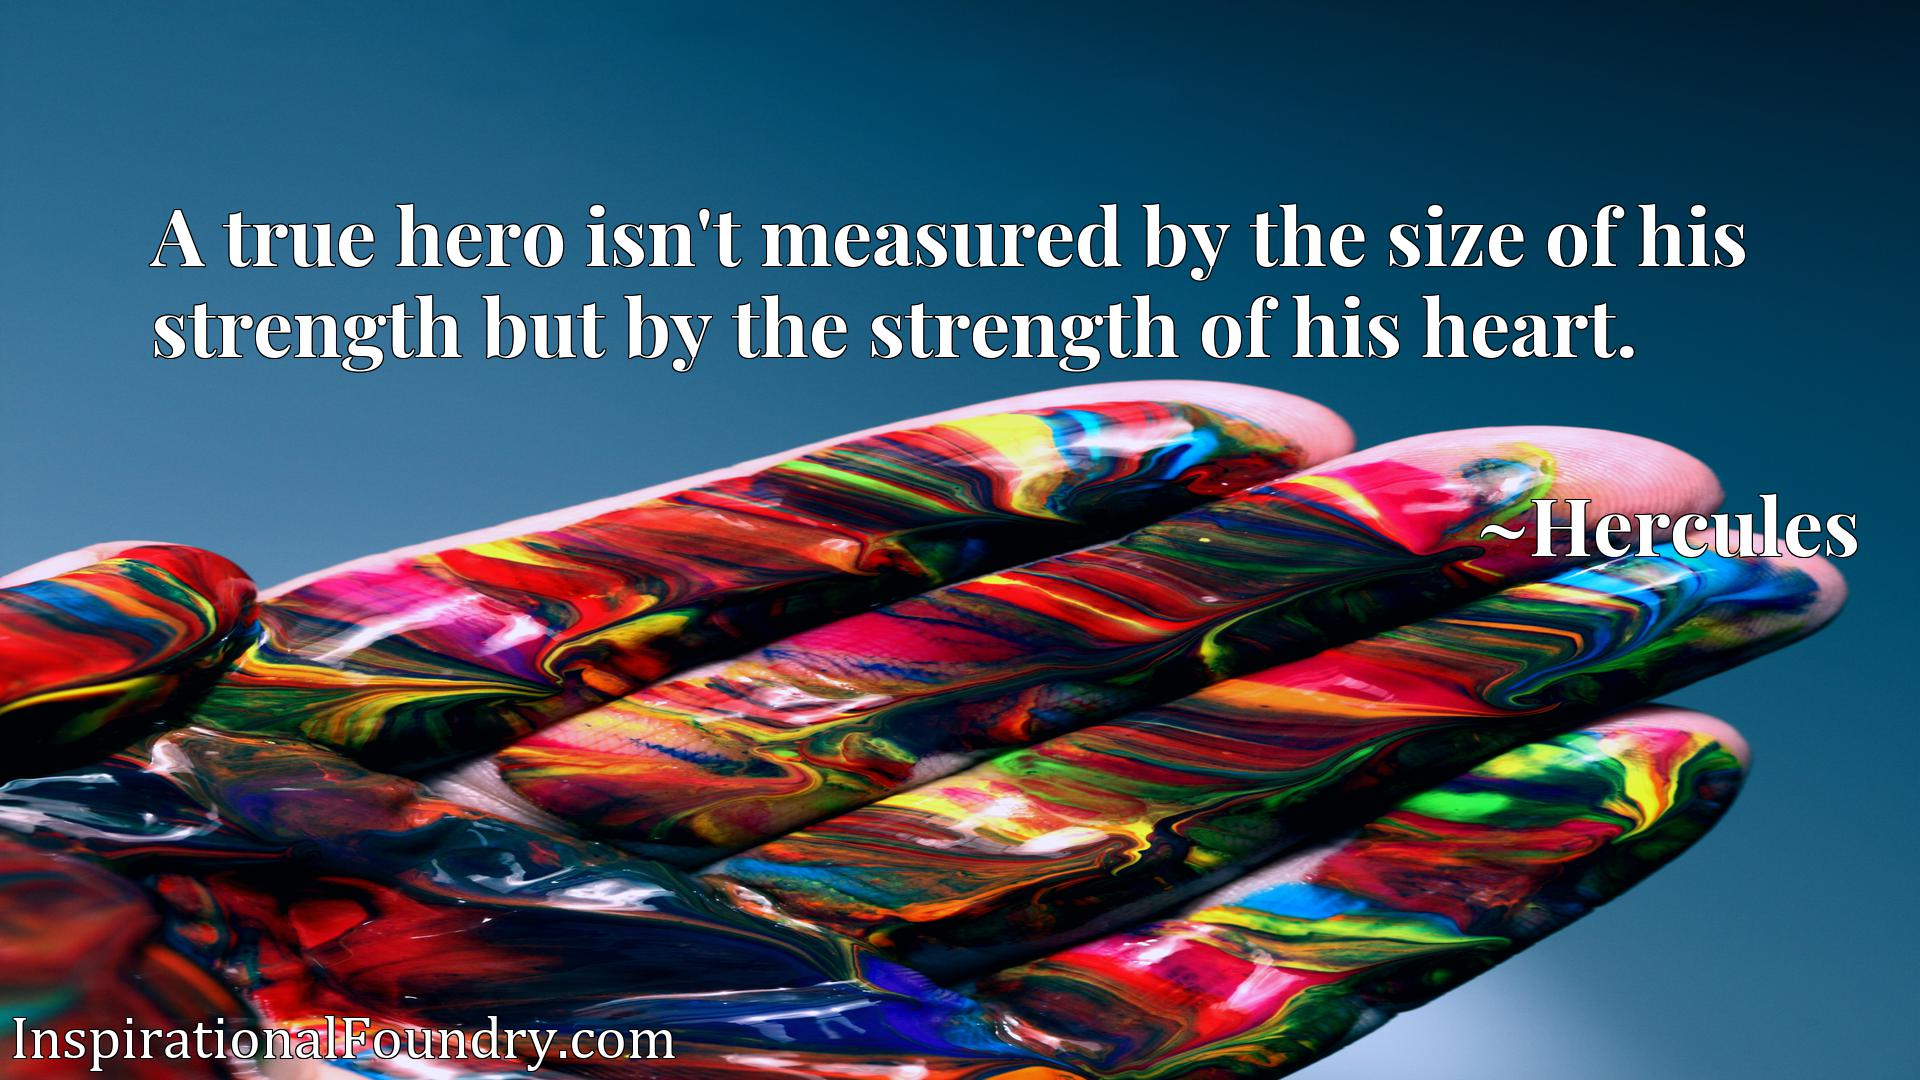 A true hero isn't measured by the size of his strength but by the strength of his heart.